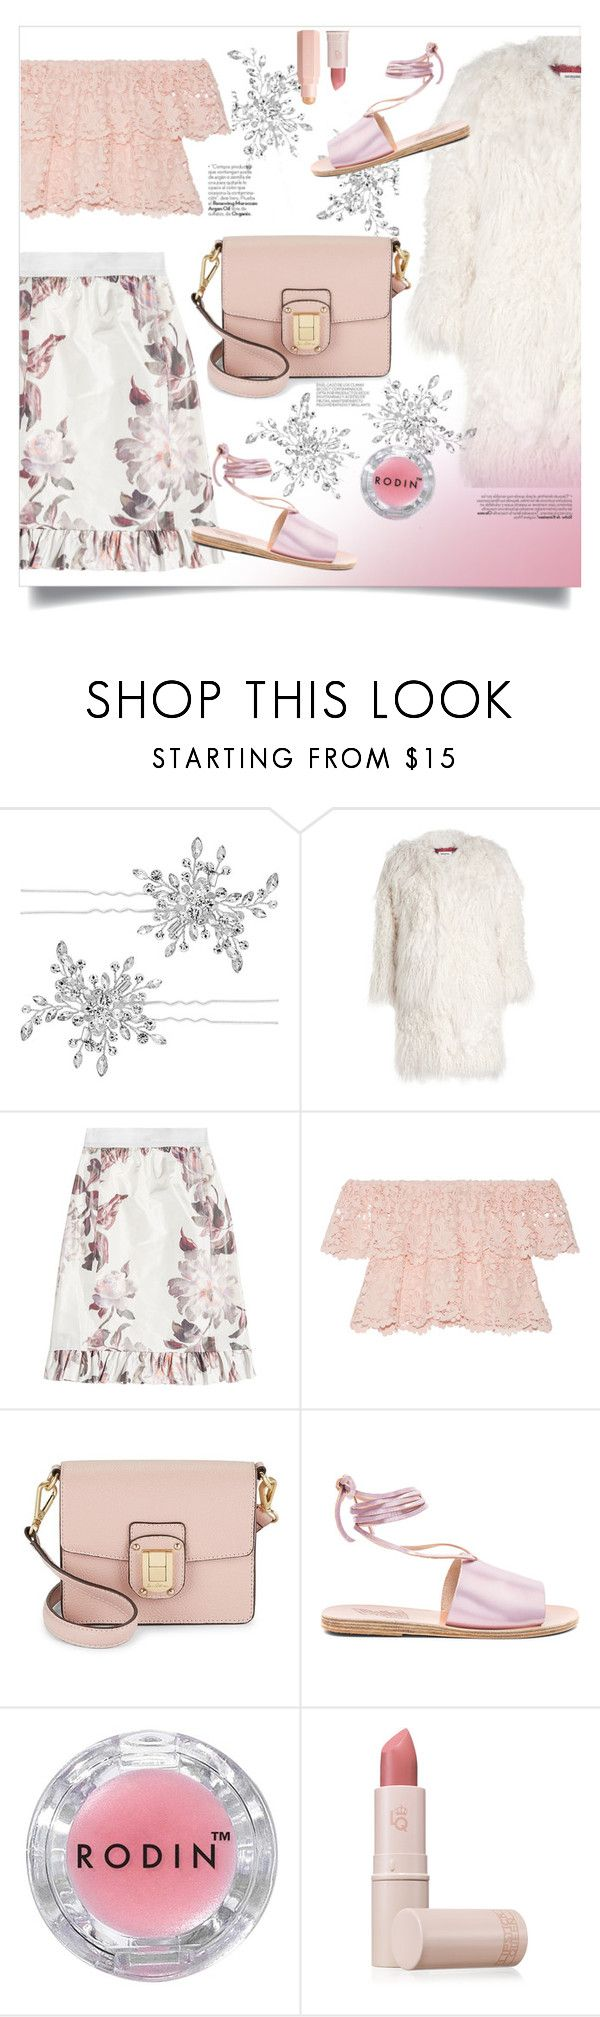 """""""Floral act"""" by devaanggraenii ❤ liked on Polyvore featuring Matthew Williamson, Zadig & Voltaire, Brock Collection, Miguelina, Sam Edelman, Ancient Greek Sandals, Rodin and Lipstick Queen"""